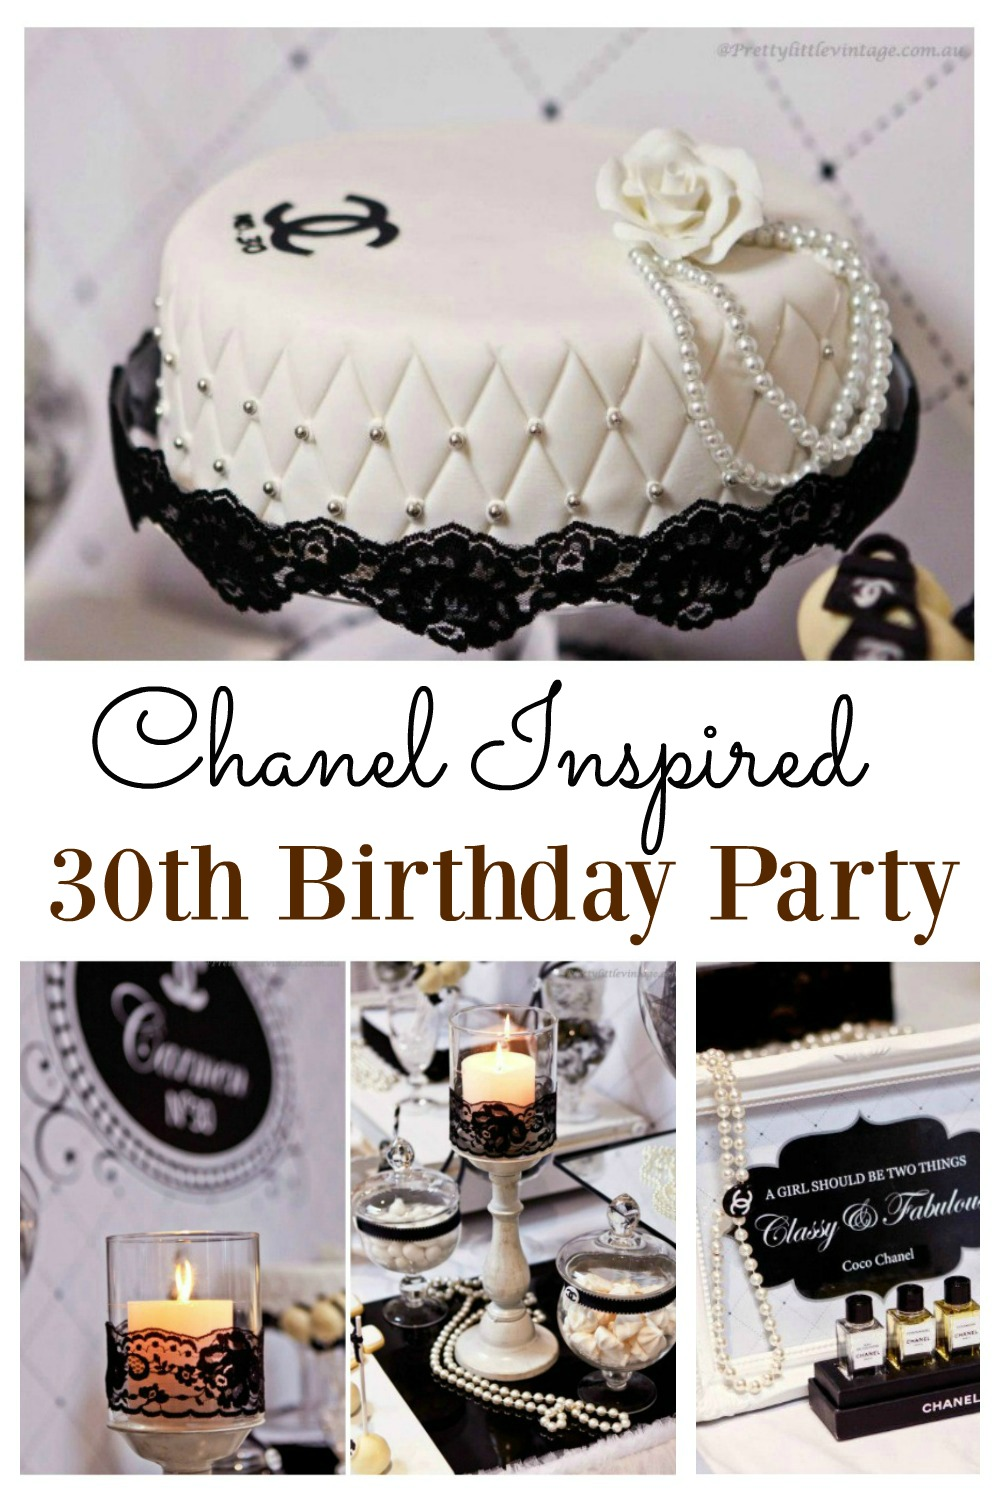 If You Are Looking To Organize A Chanel Inspired Party This 30th Birthday Will